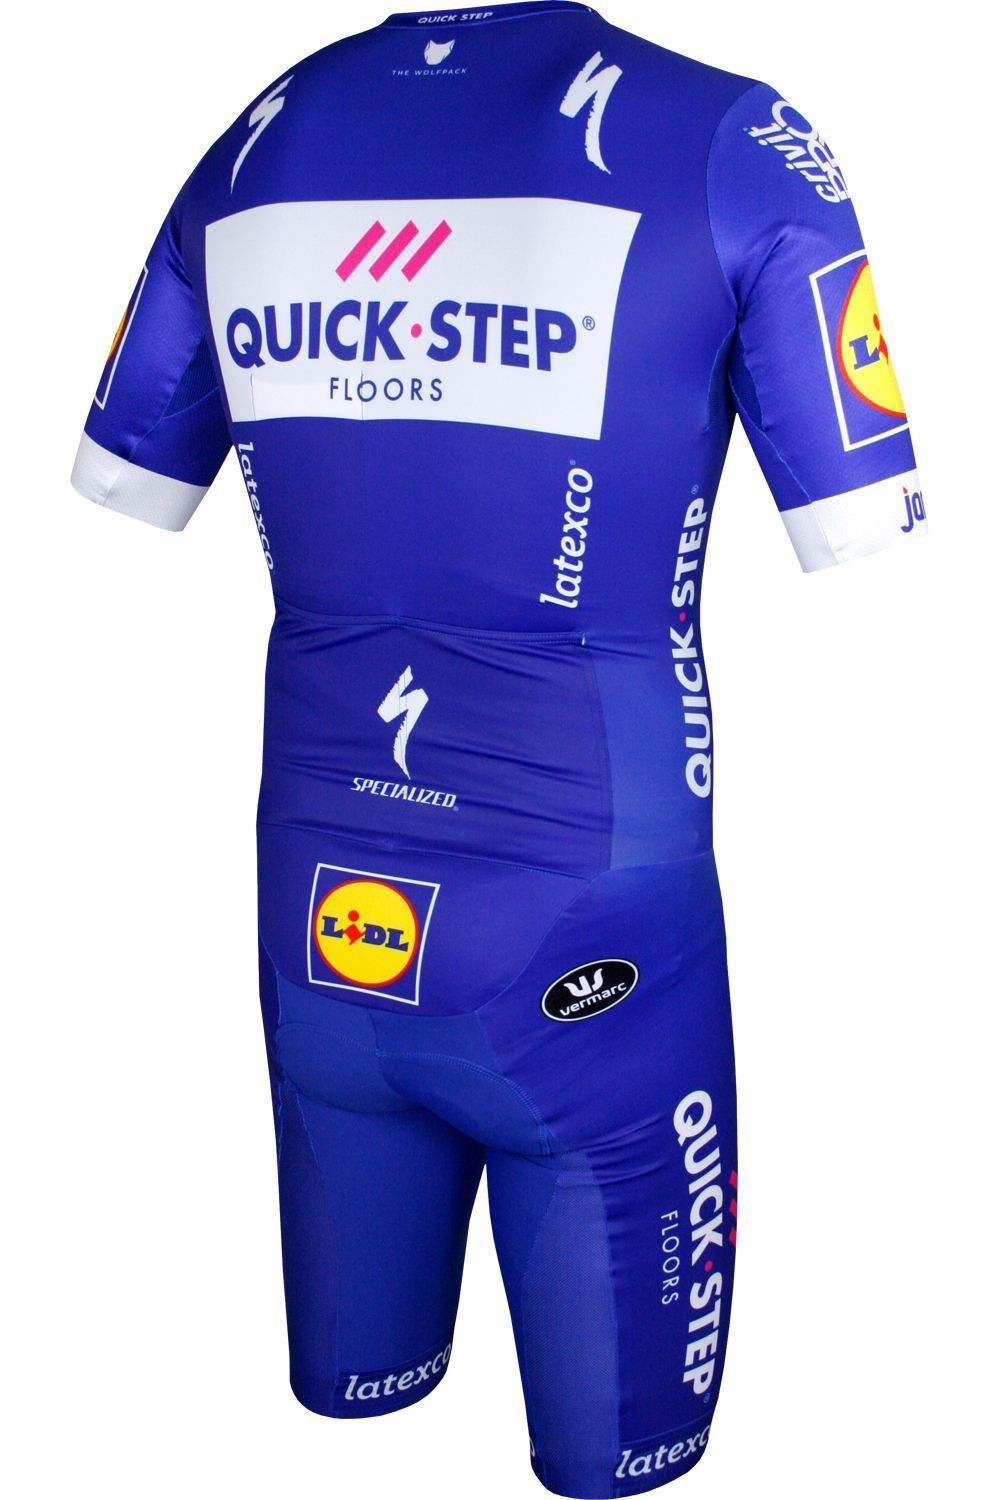 c52a5bf8a Quick-Step Floors 2018 racing sprint-skinsuit (PRR